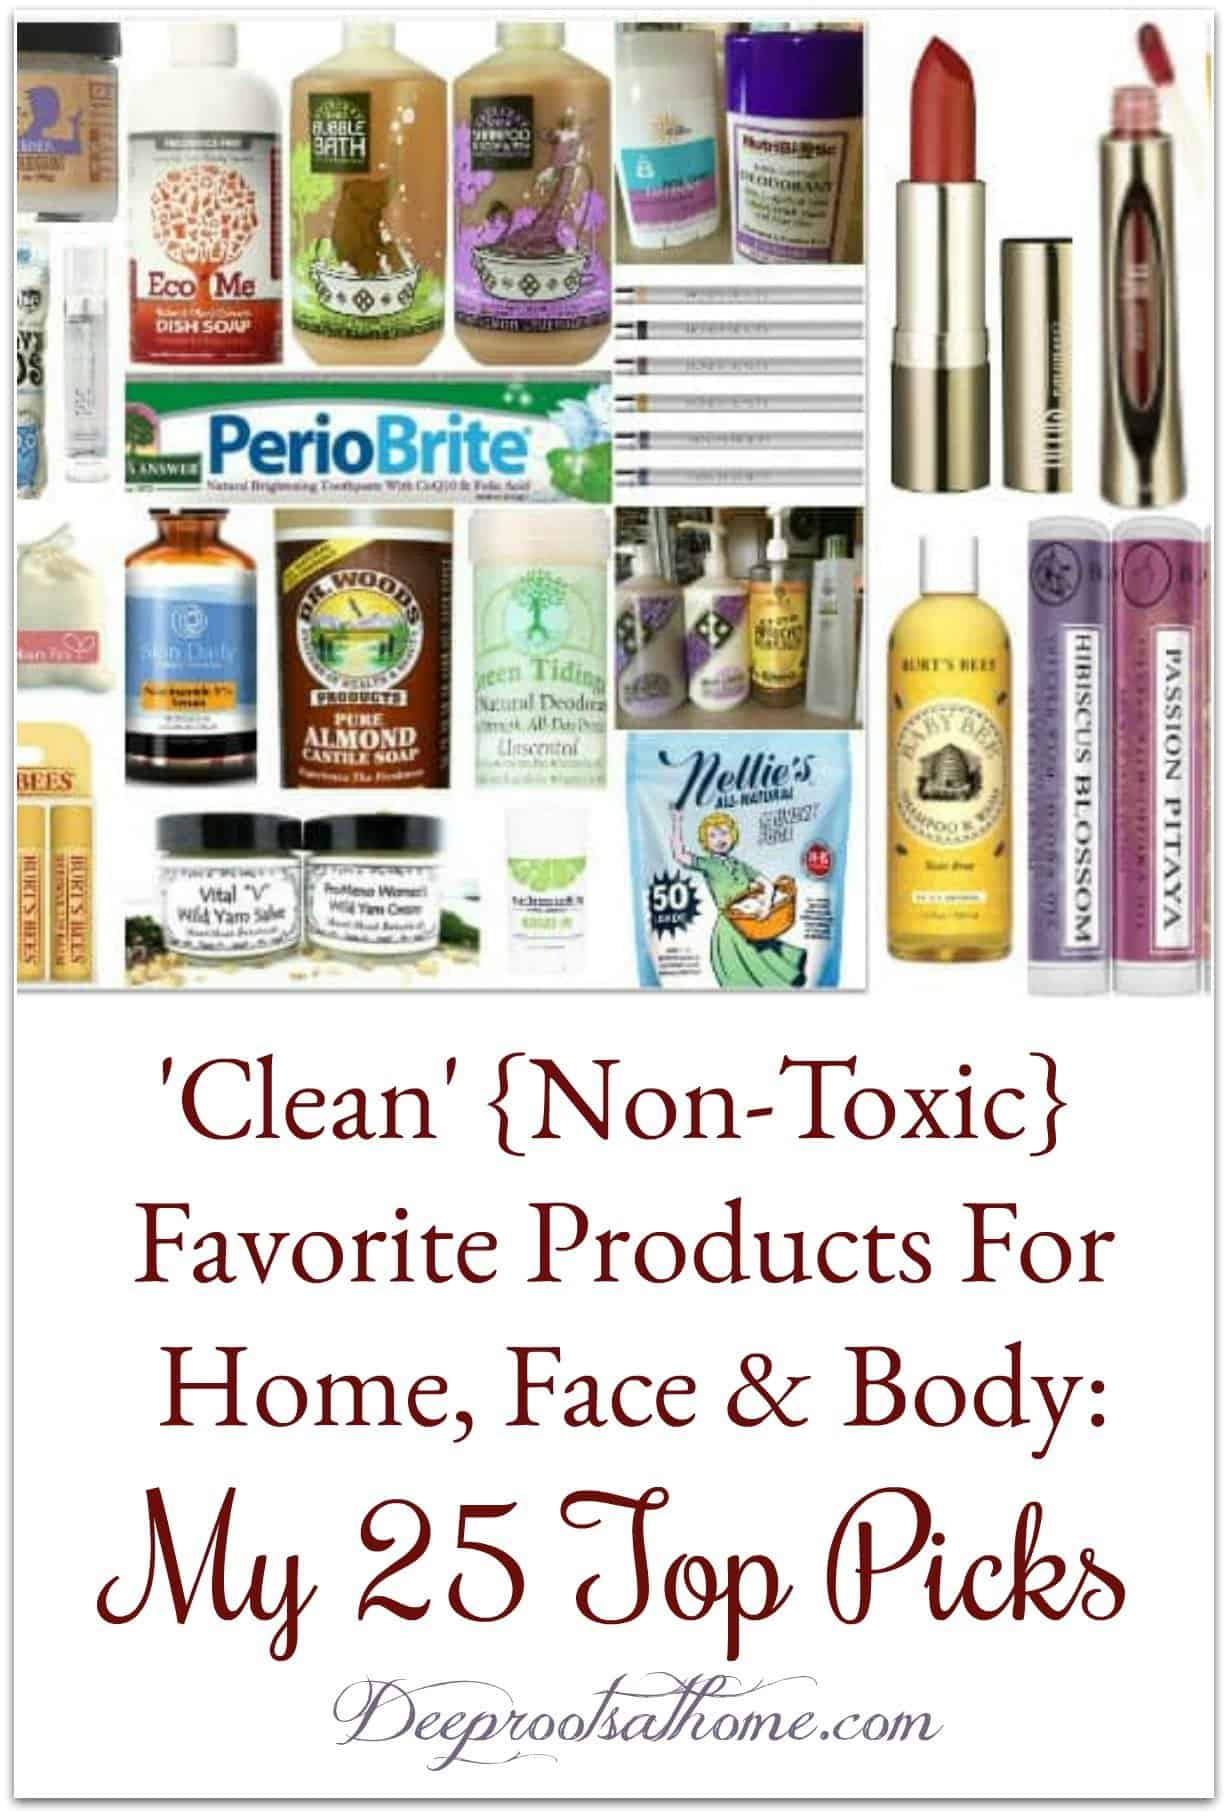 My top 25 favorite non-toxic personal products